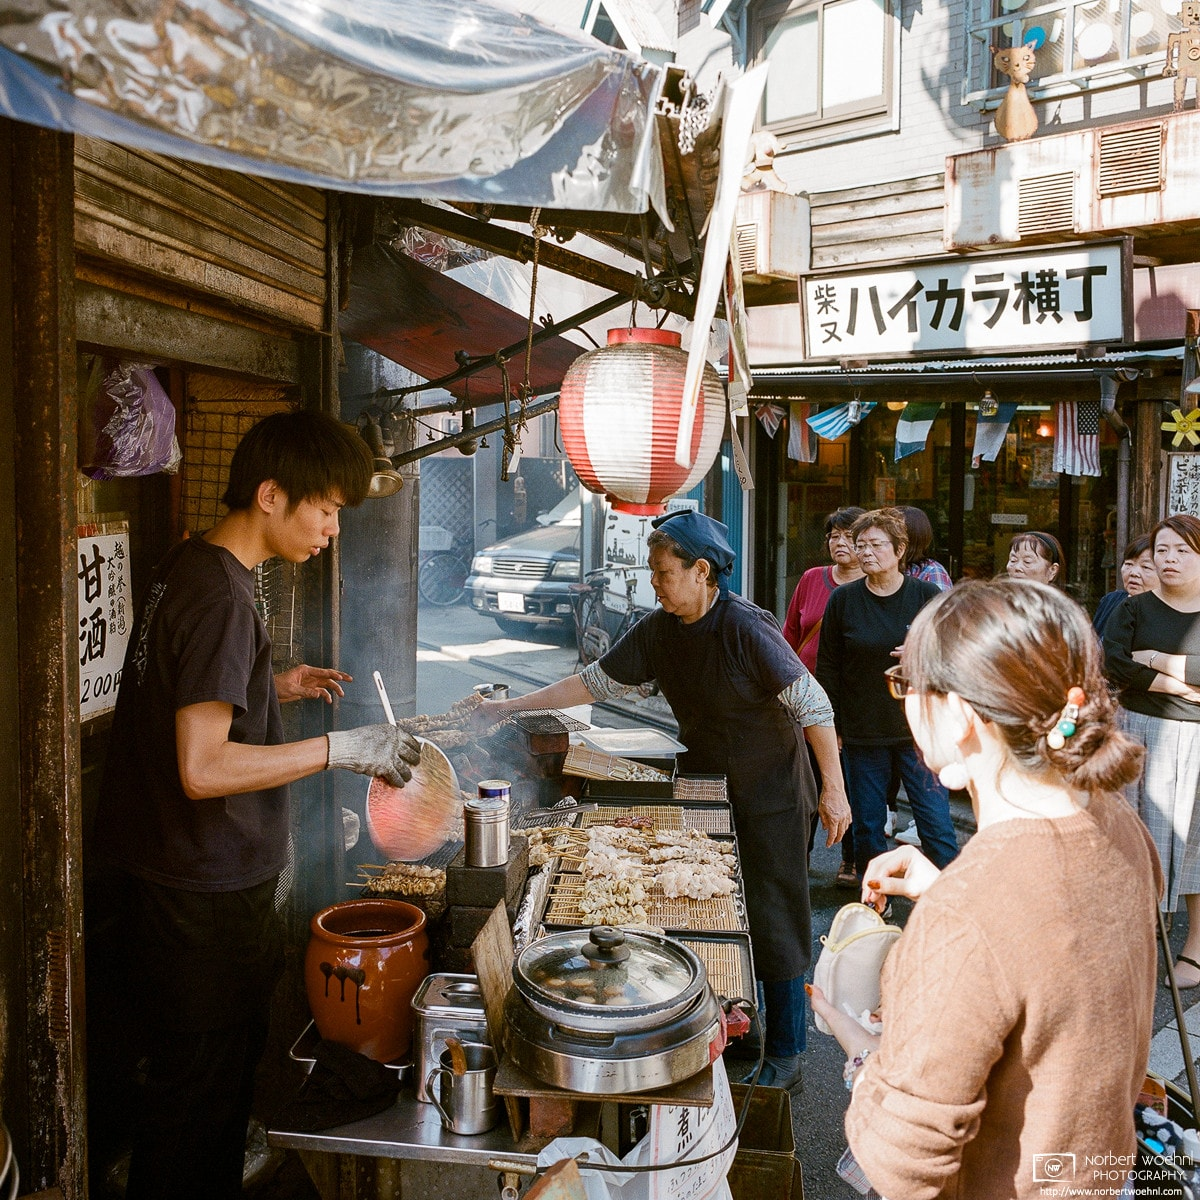 Scene from a Yakitori Stand in the traditional Shibamata (柴又) area in the northeast of Tokyo, Japan.